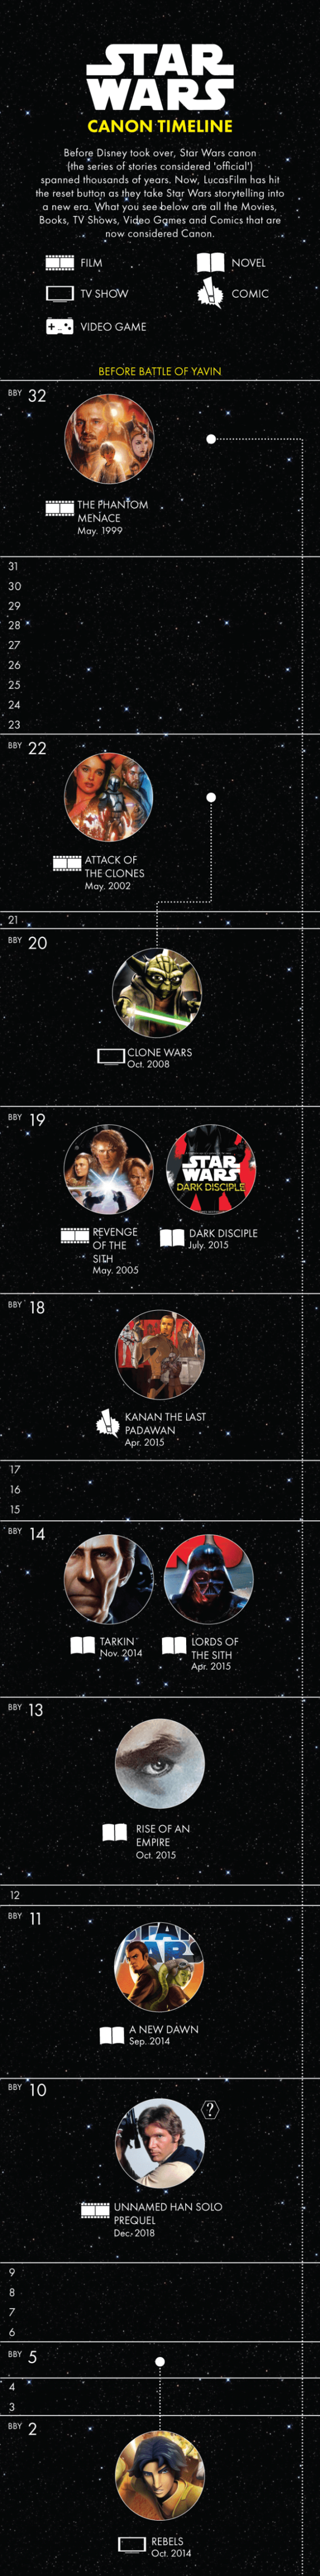 Infografía Star Wars